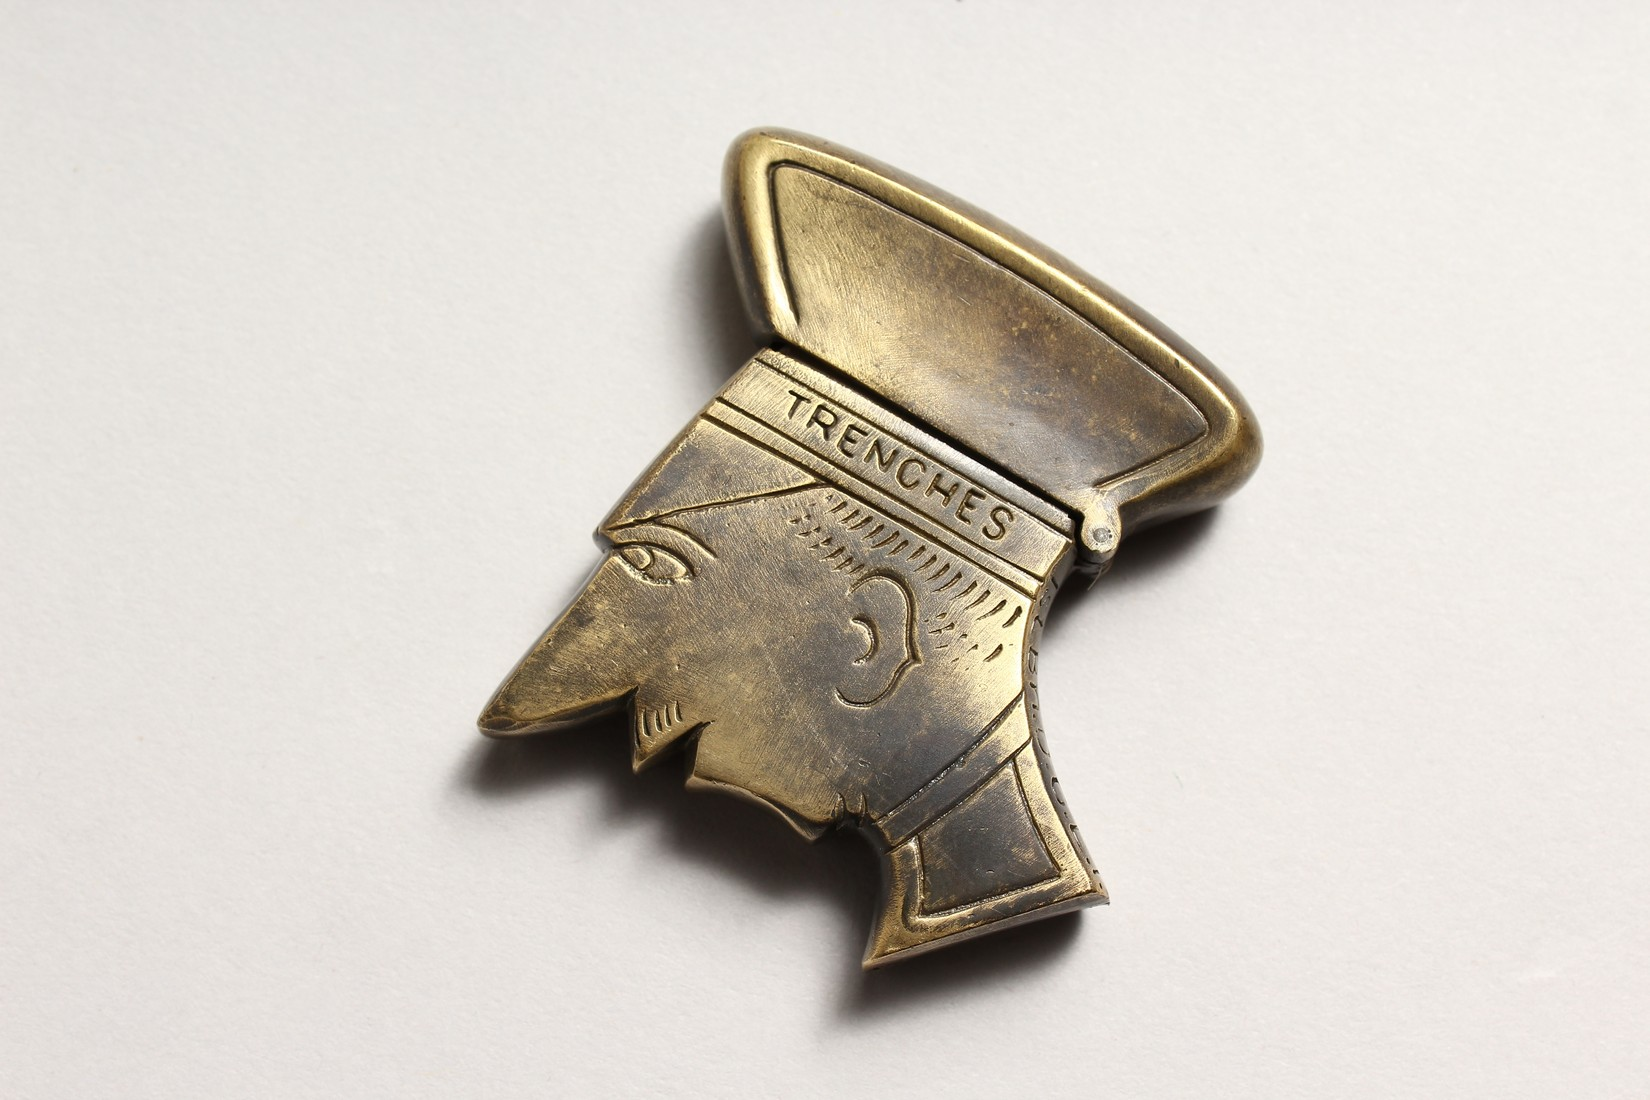 A FIRST WORLD WAR BRASS REPLICA YPRES VESTA CASE 2ins long. - Image 2 of 3